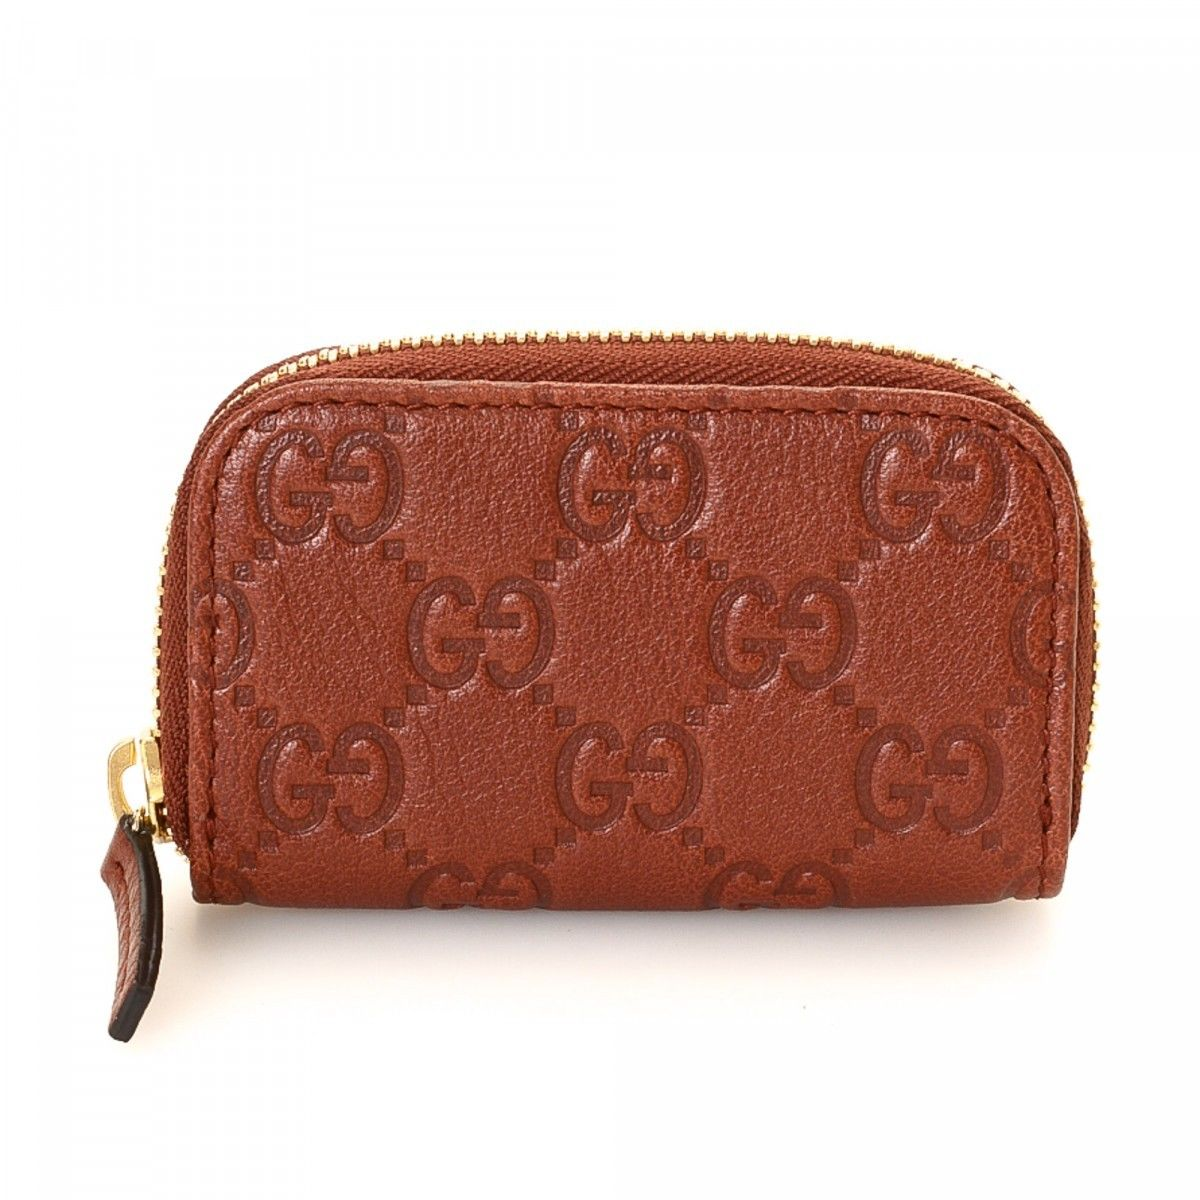 d28b3f267ee9 Gucci Guccissima Coin Purse Guccissima Leather - LXRandCo - Pre-Owned  Luxury Vintage